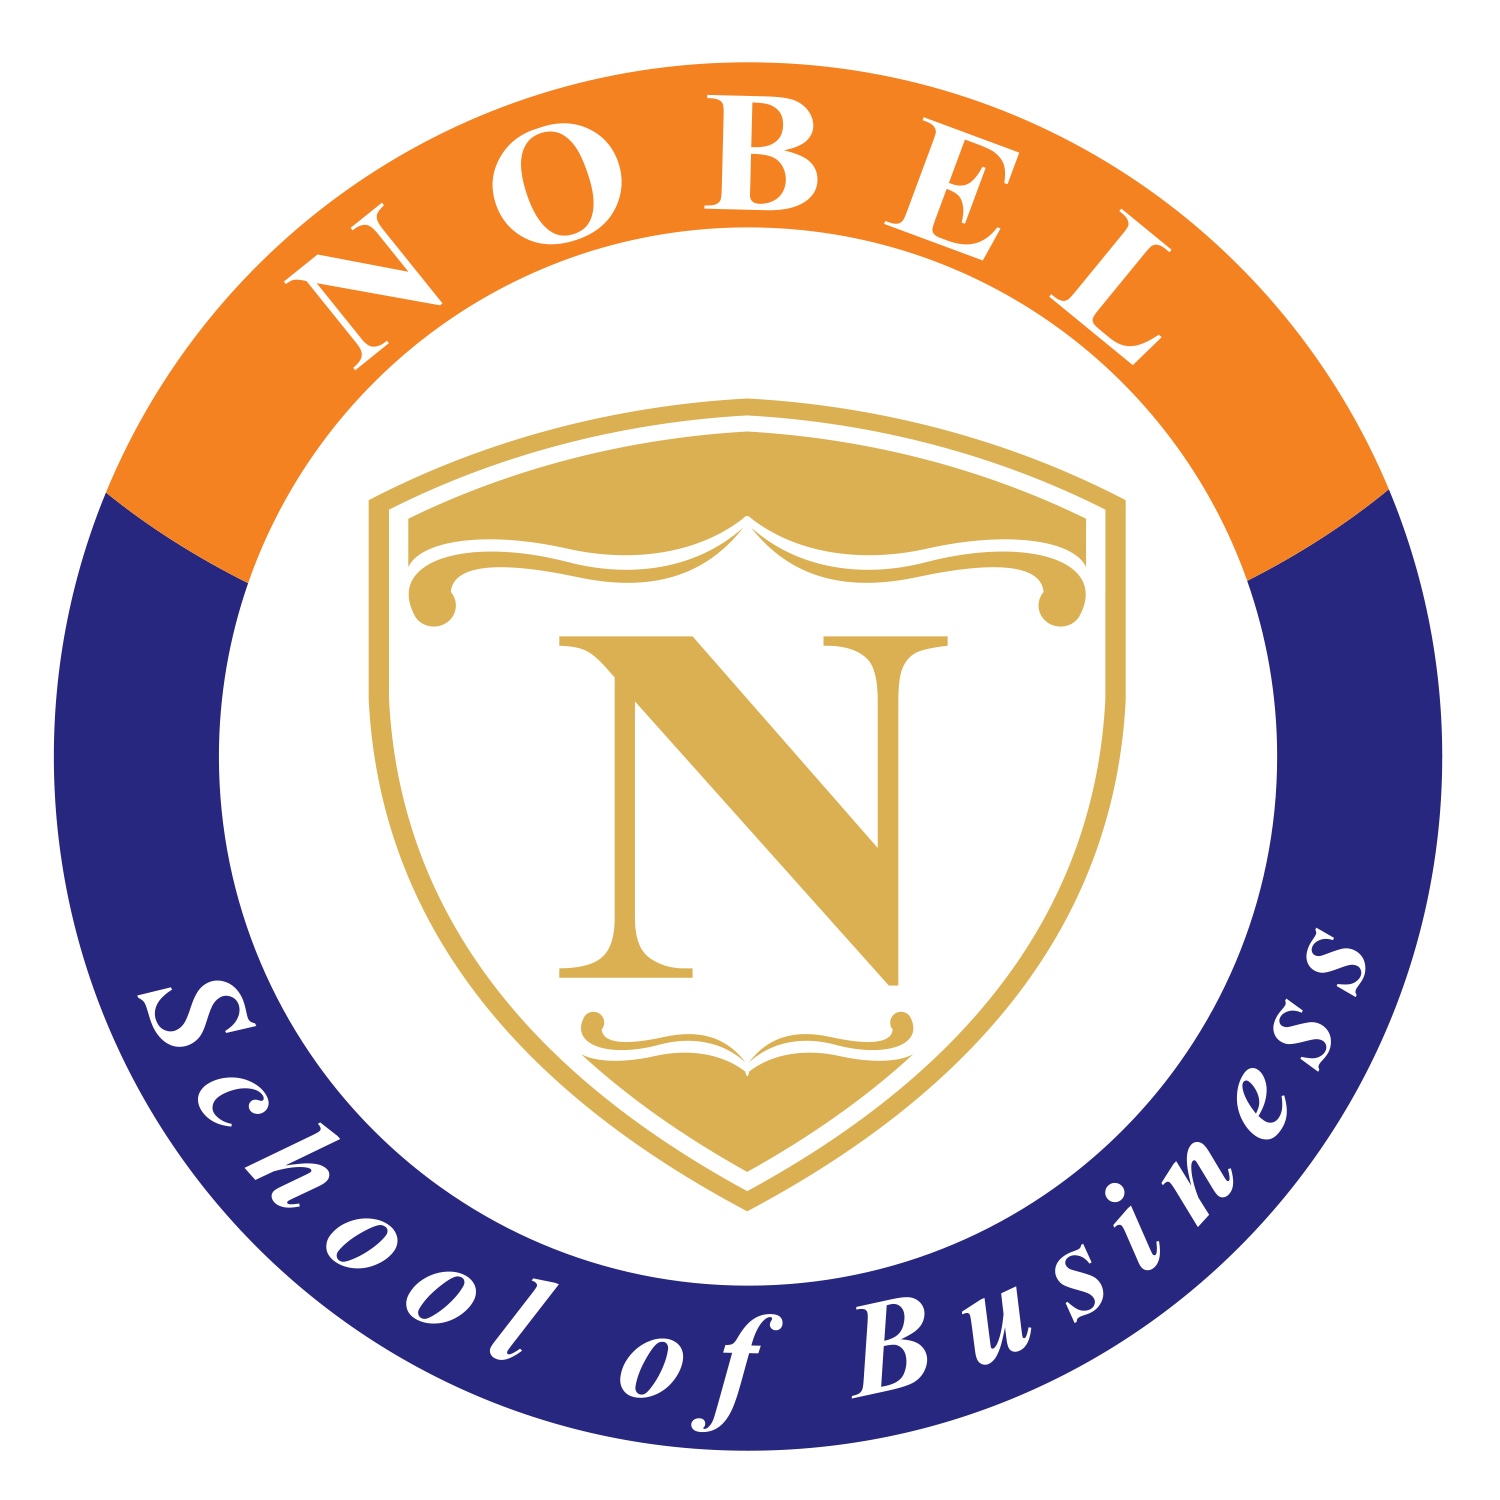 Nobel School of Business